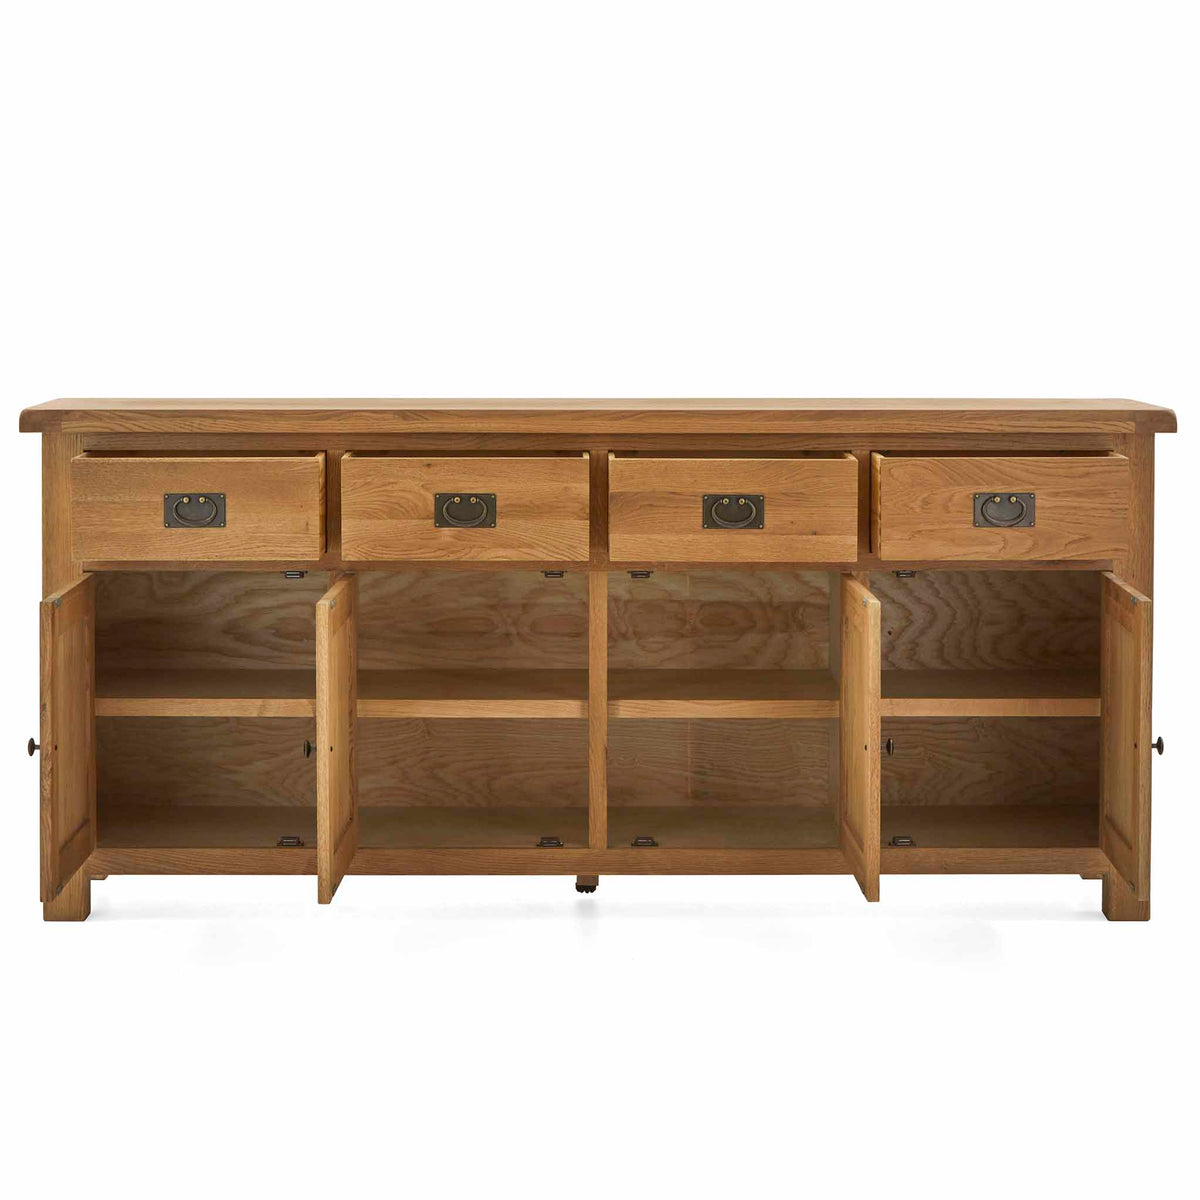 Zelah Oak Extra Large Sideboard - Front view with cupboards and drawers open